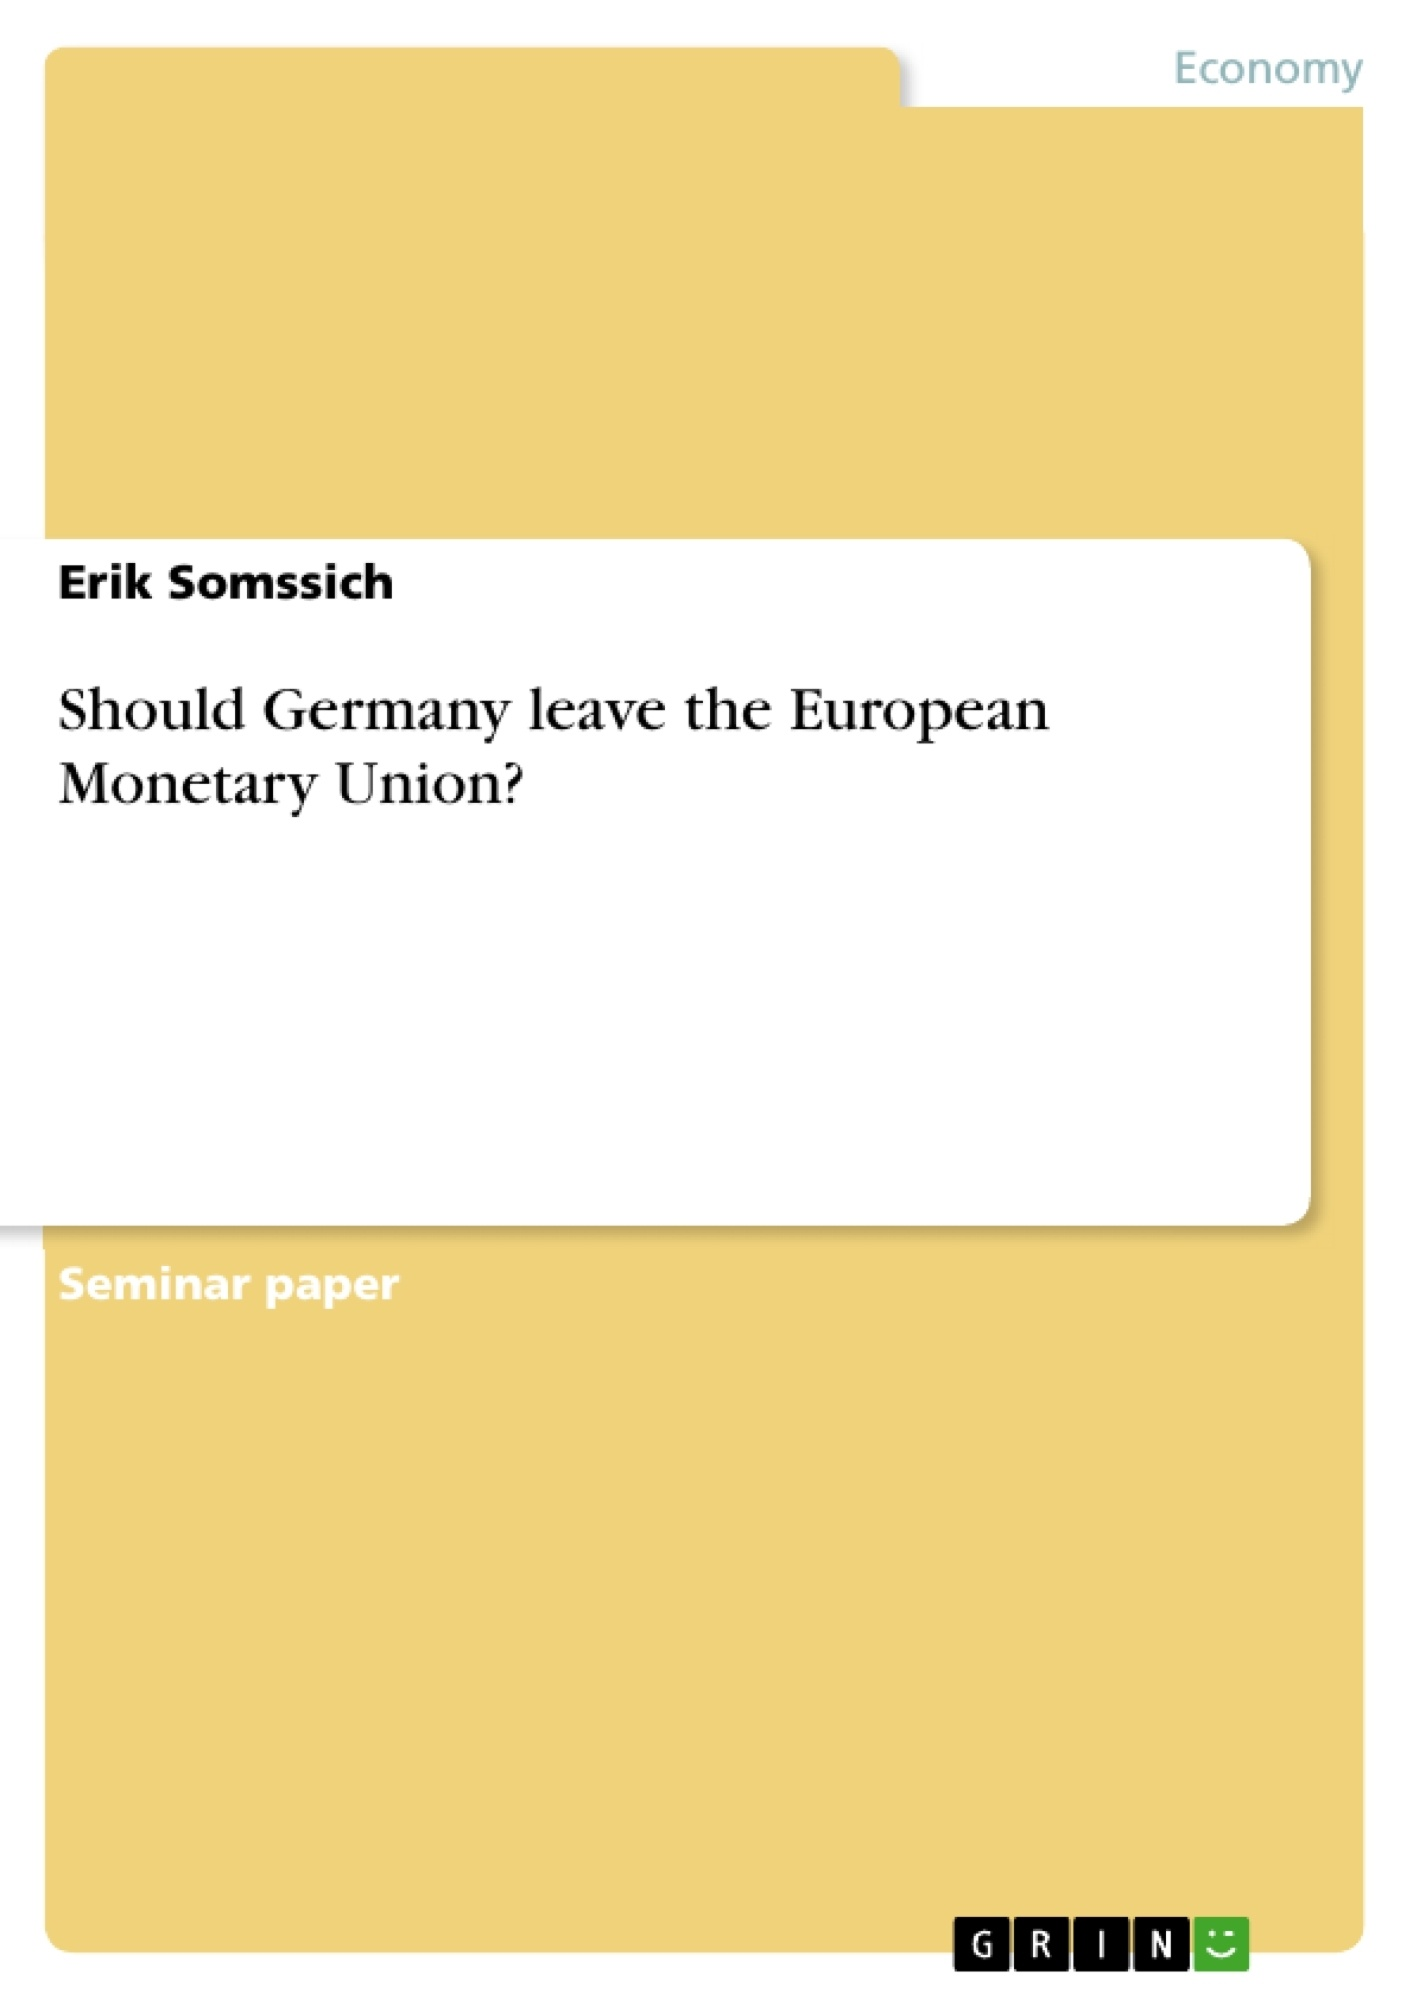 Title: Should Germany leave the European Monetary Union?